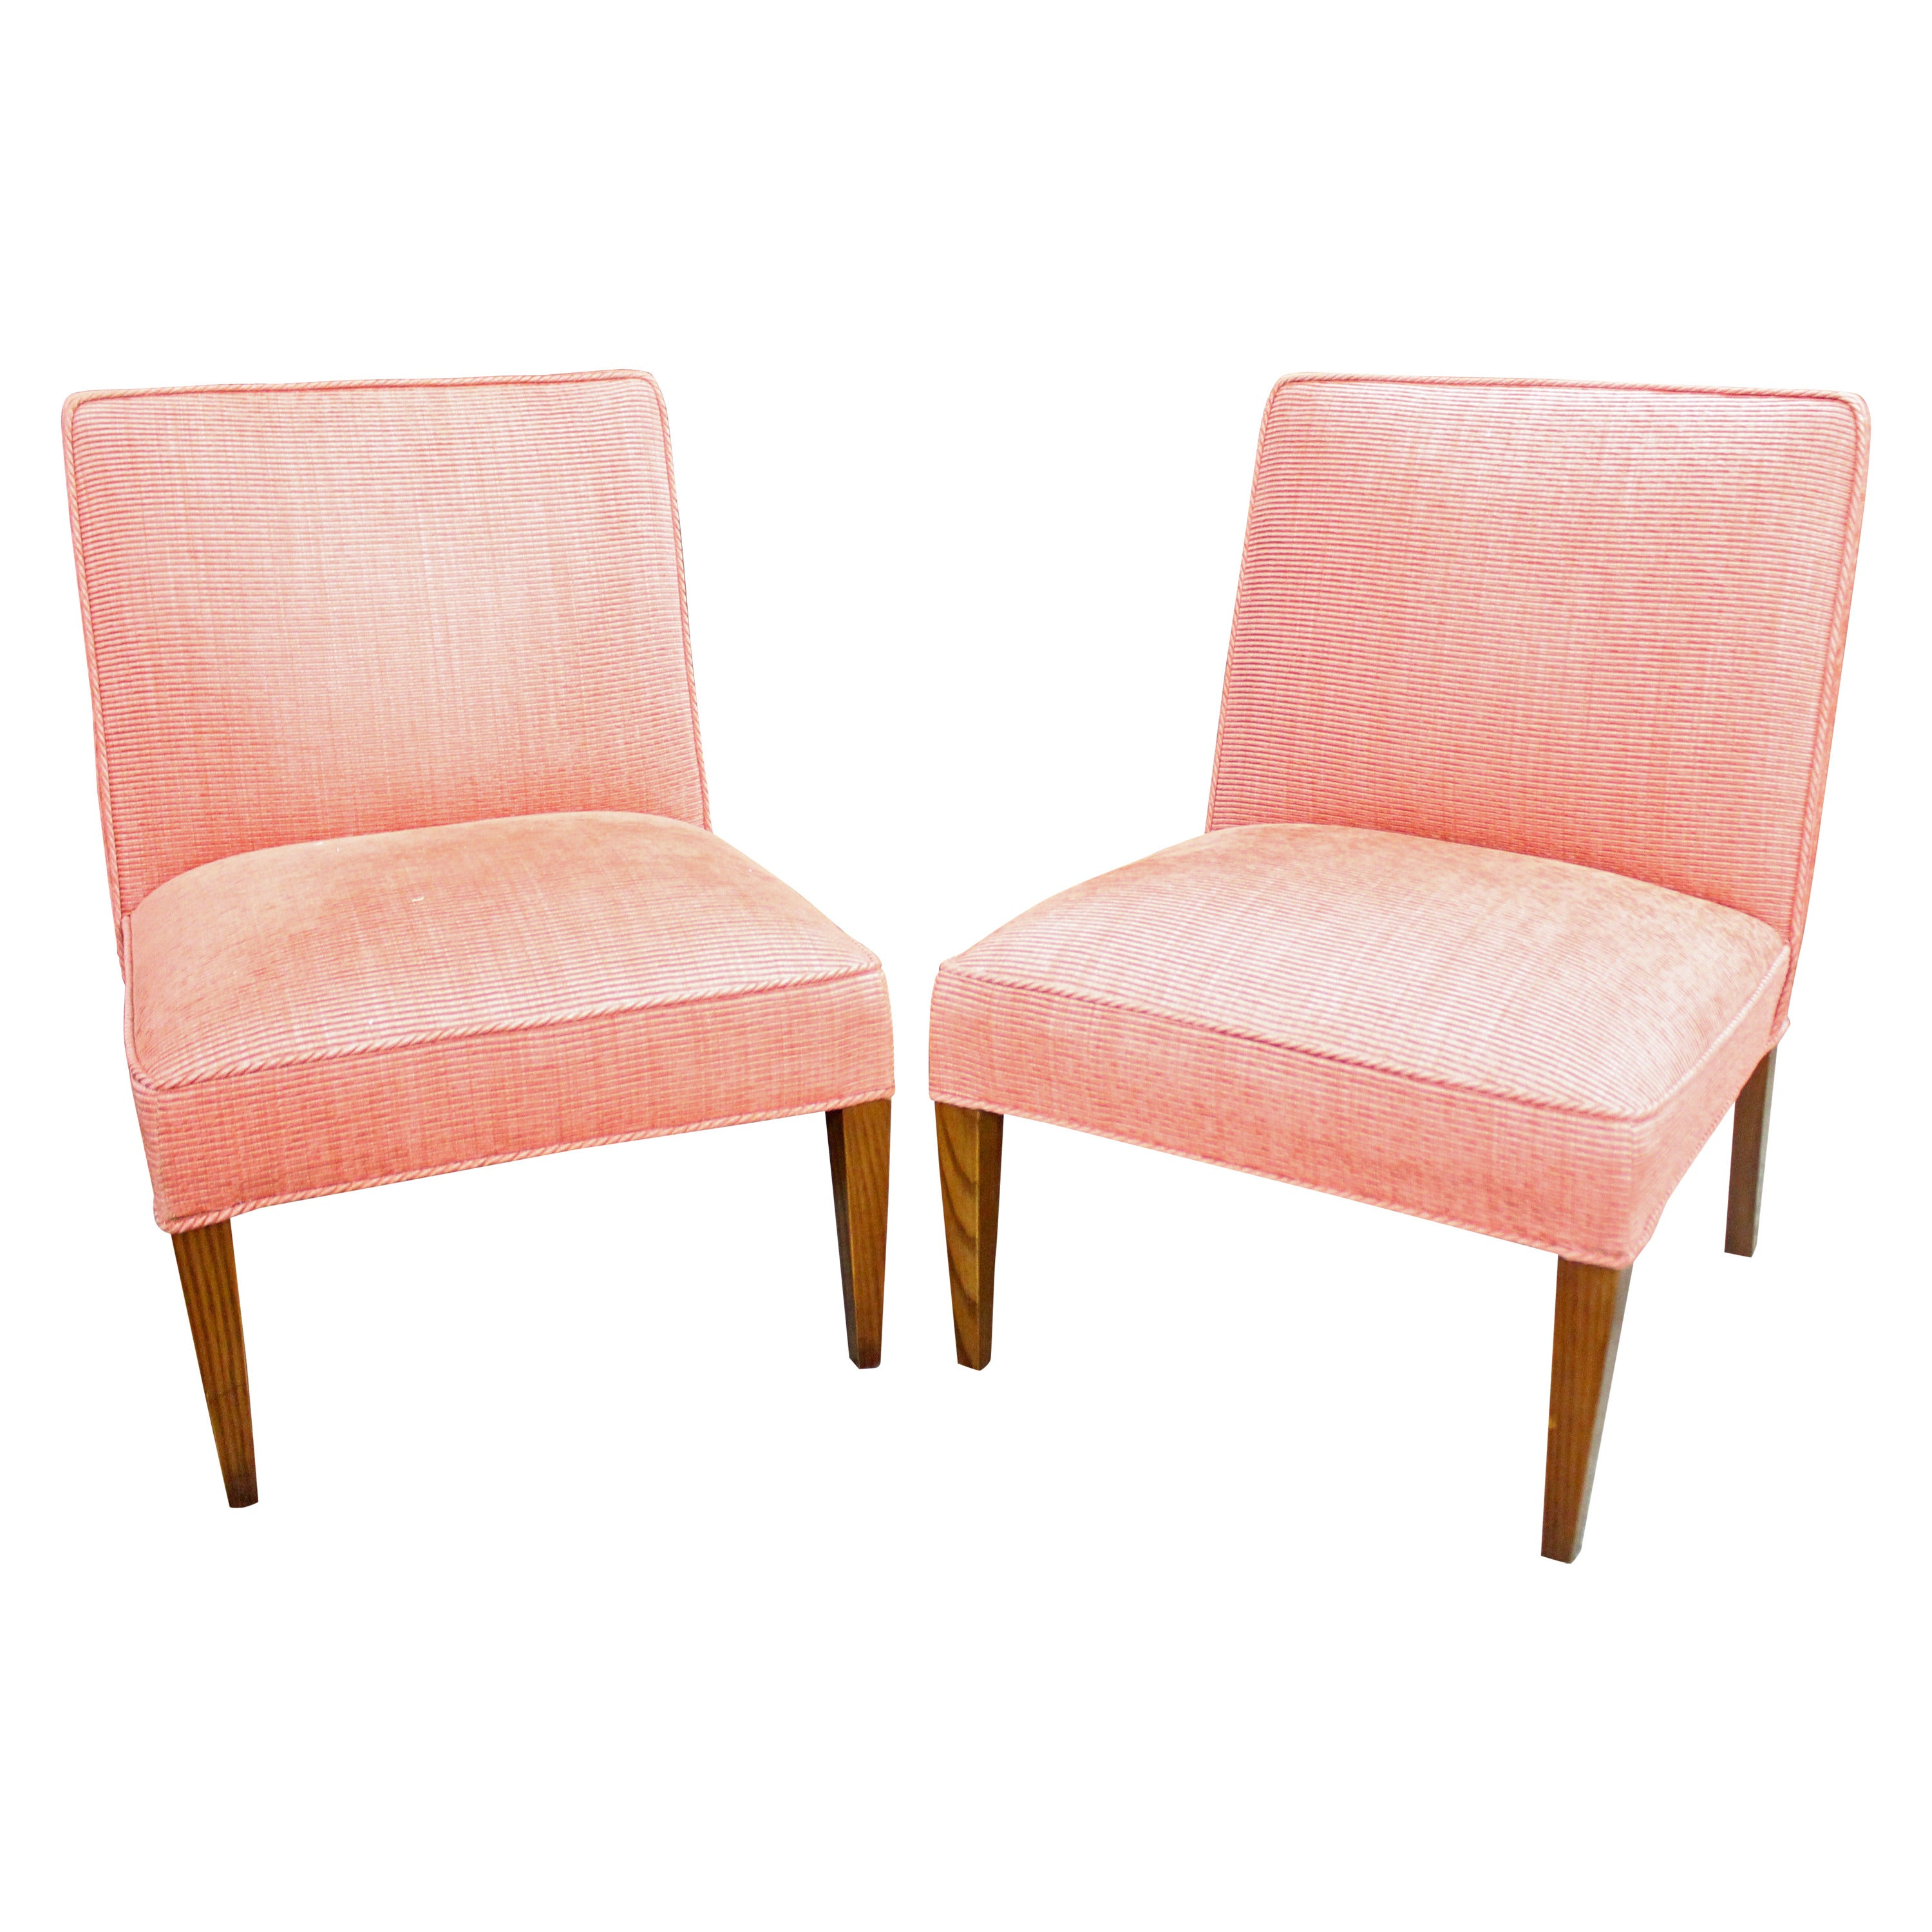 Pair of Vintage Side Chairs in a Rose Corded Fabric